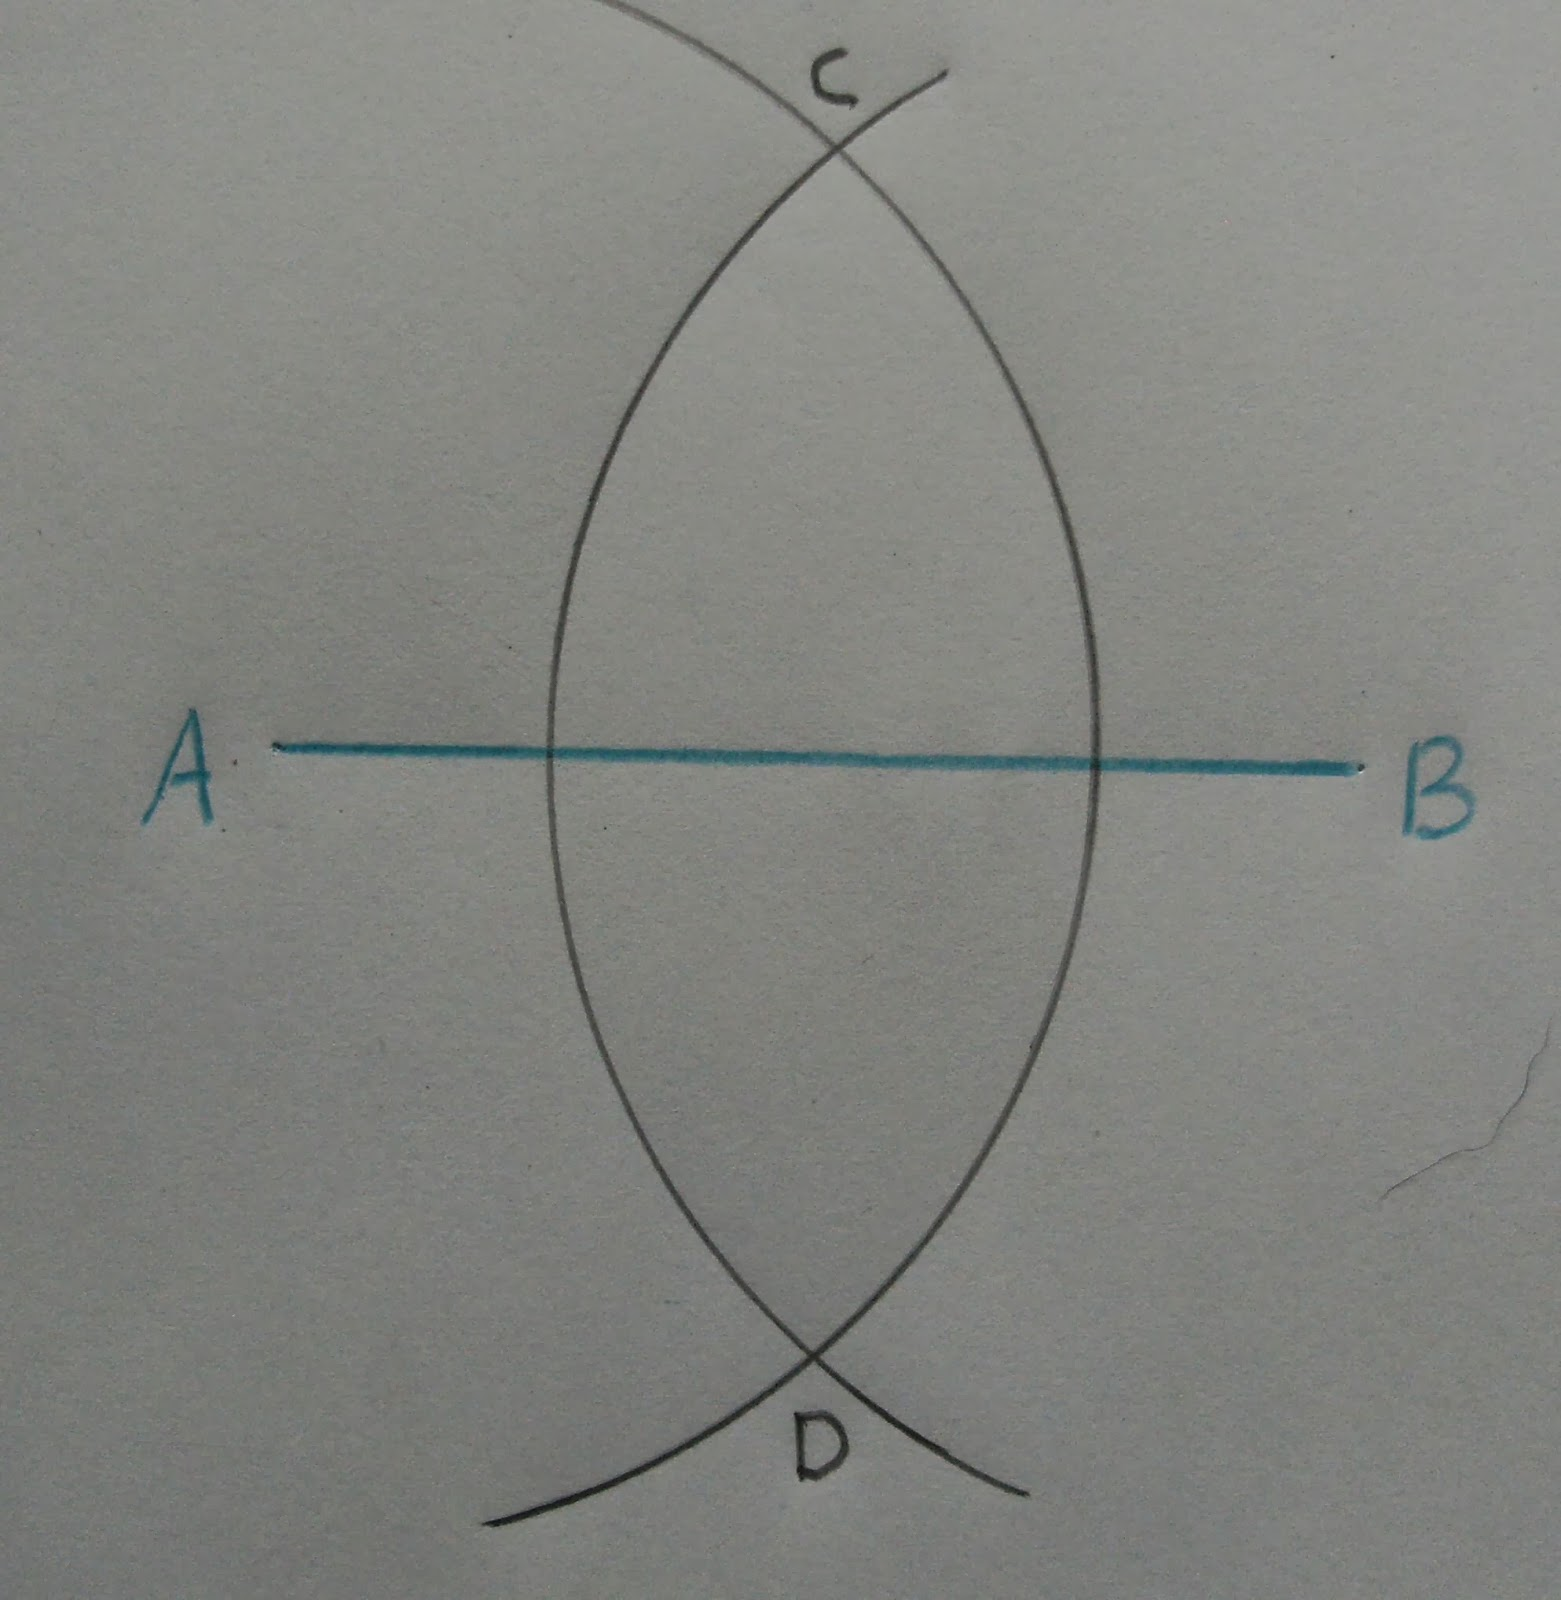 To Construct The Perpendicular Bisector Of A Line Segment